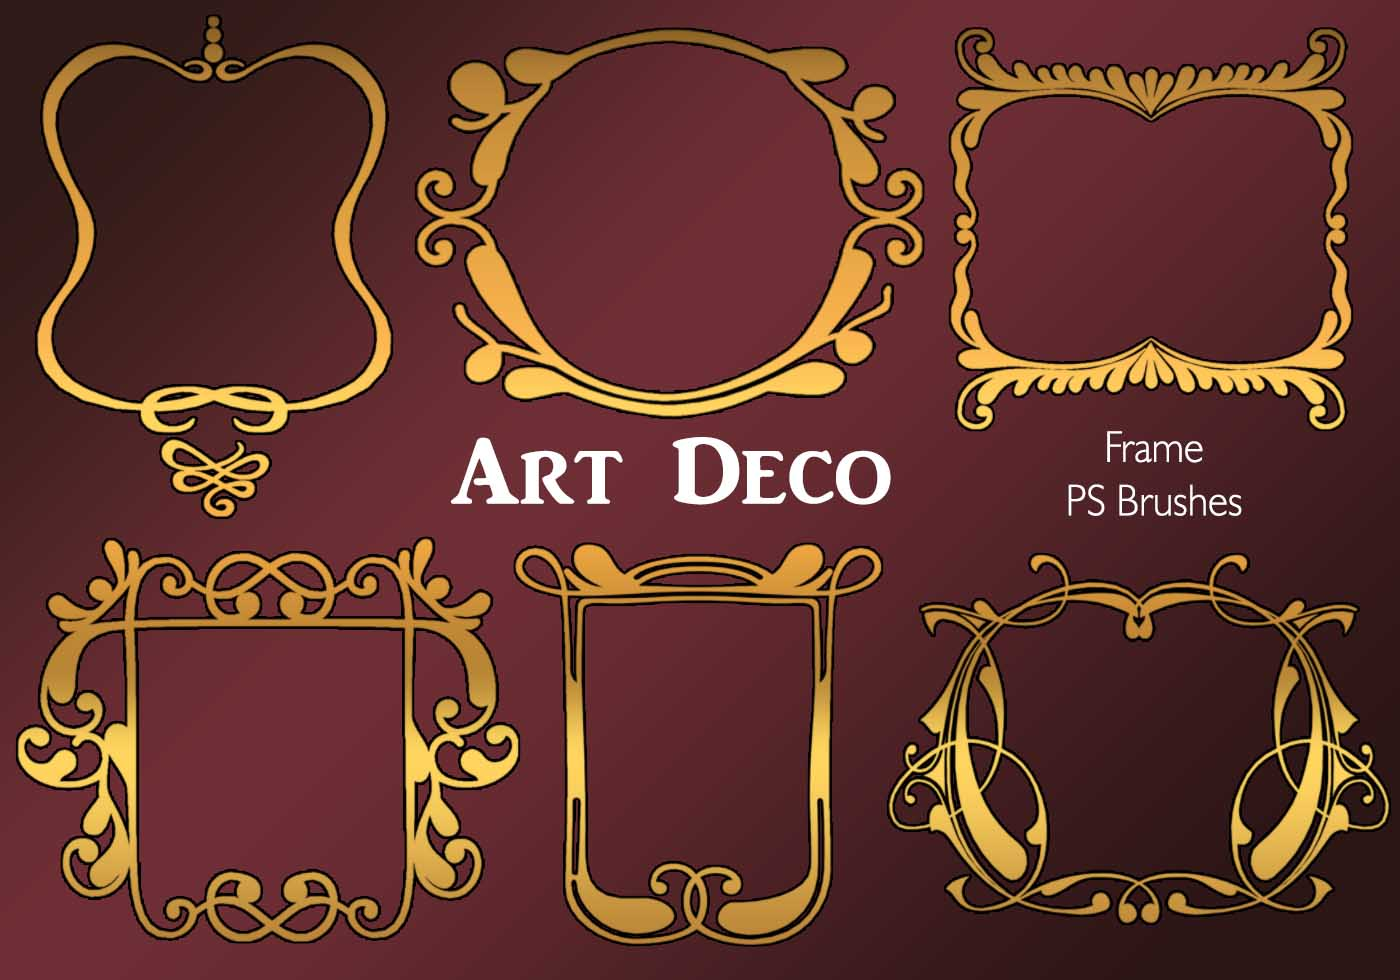 20 art deco frame ps vol 4 free photoshop brushes at brusheezy - Deco vol ...